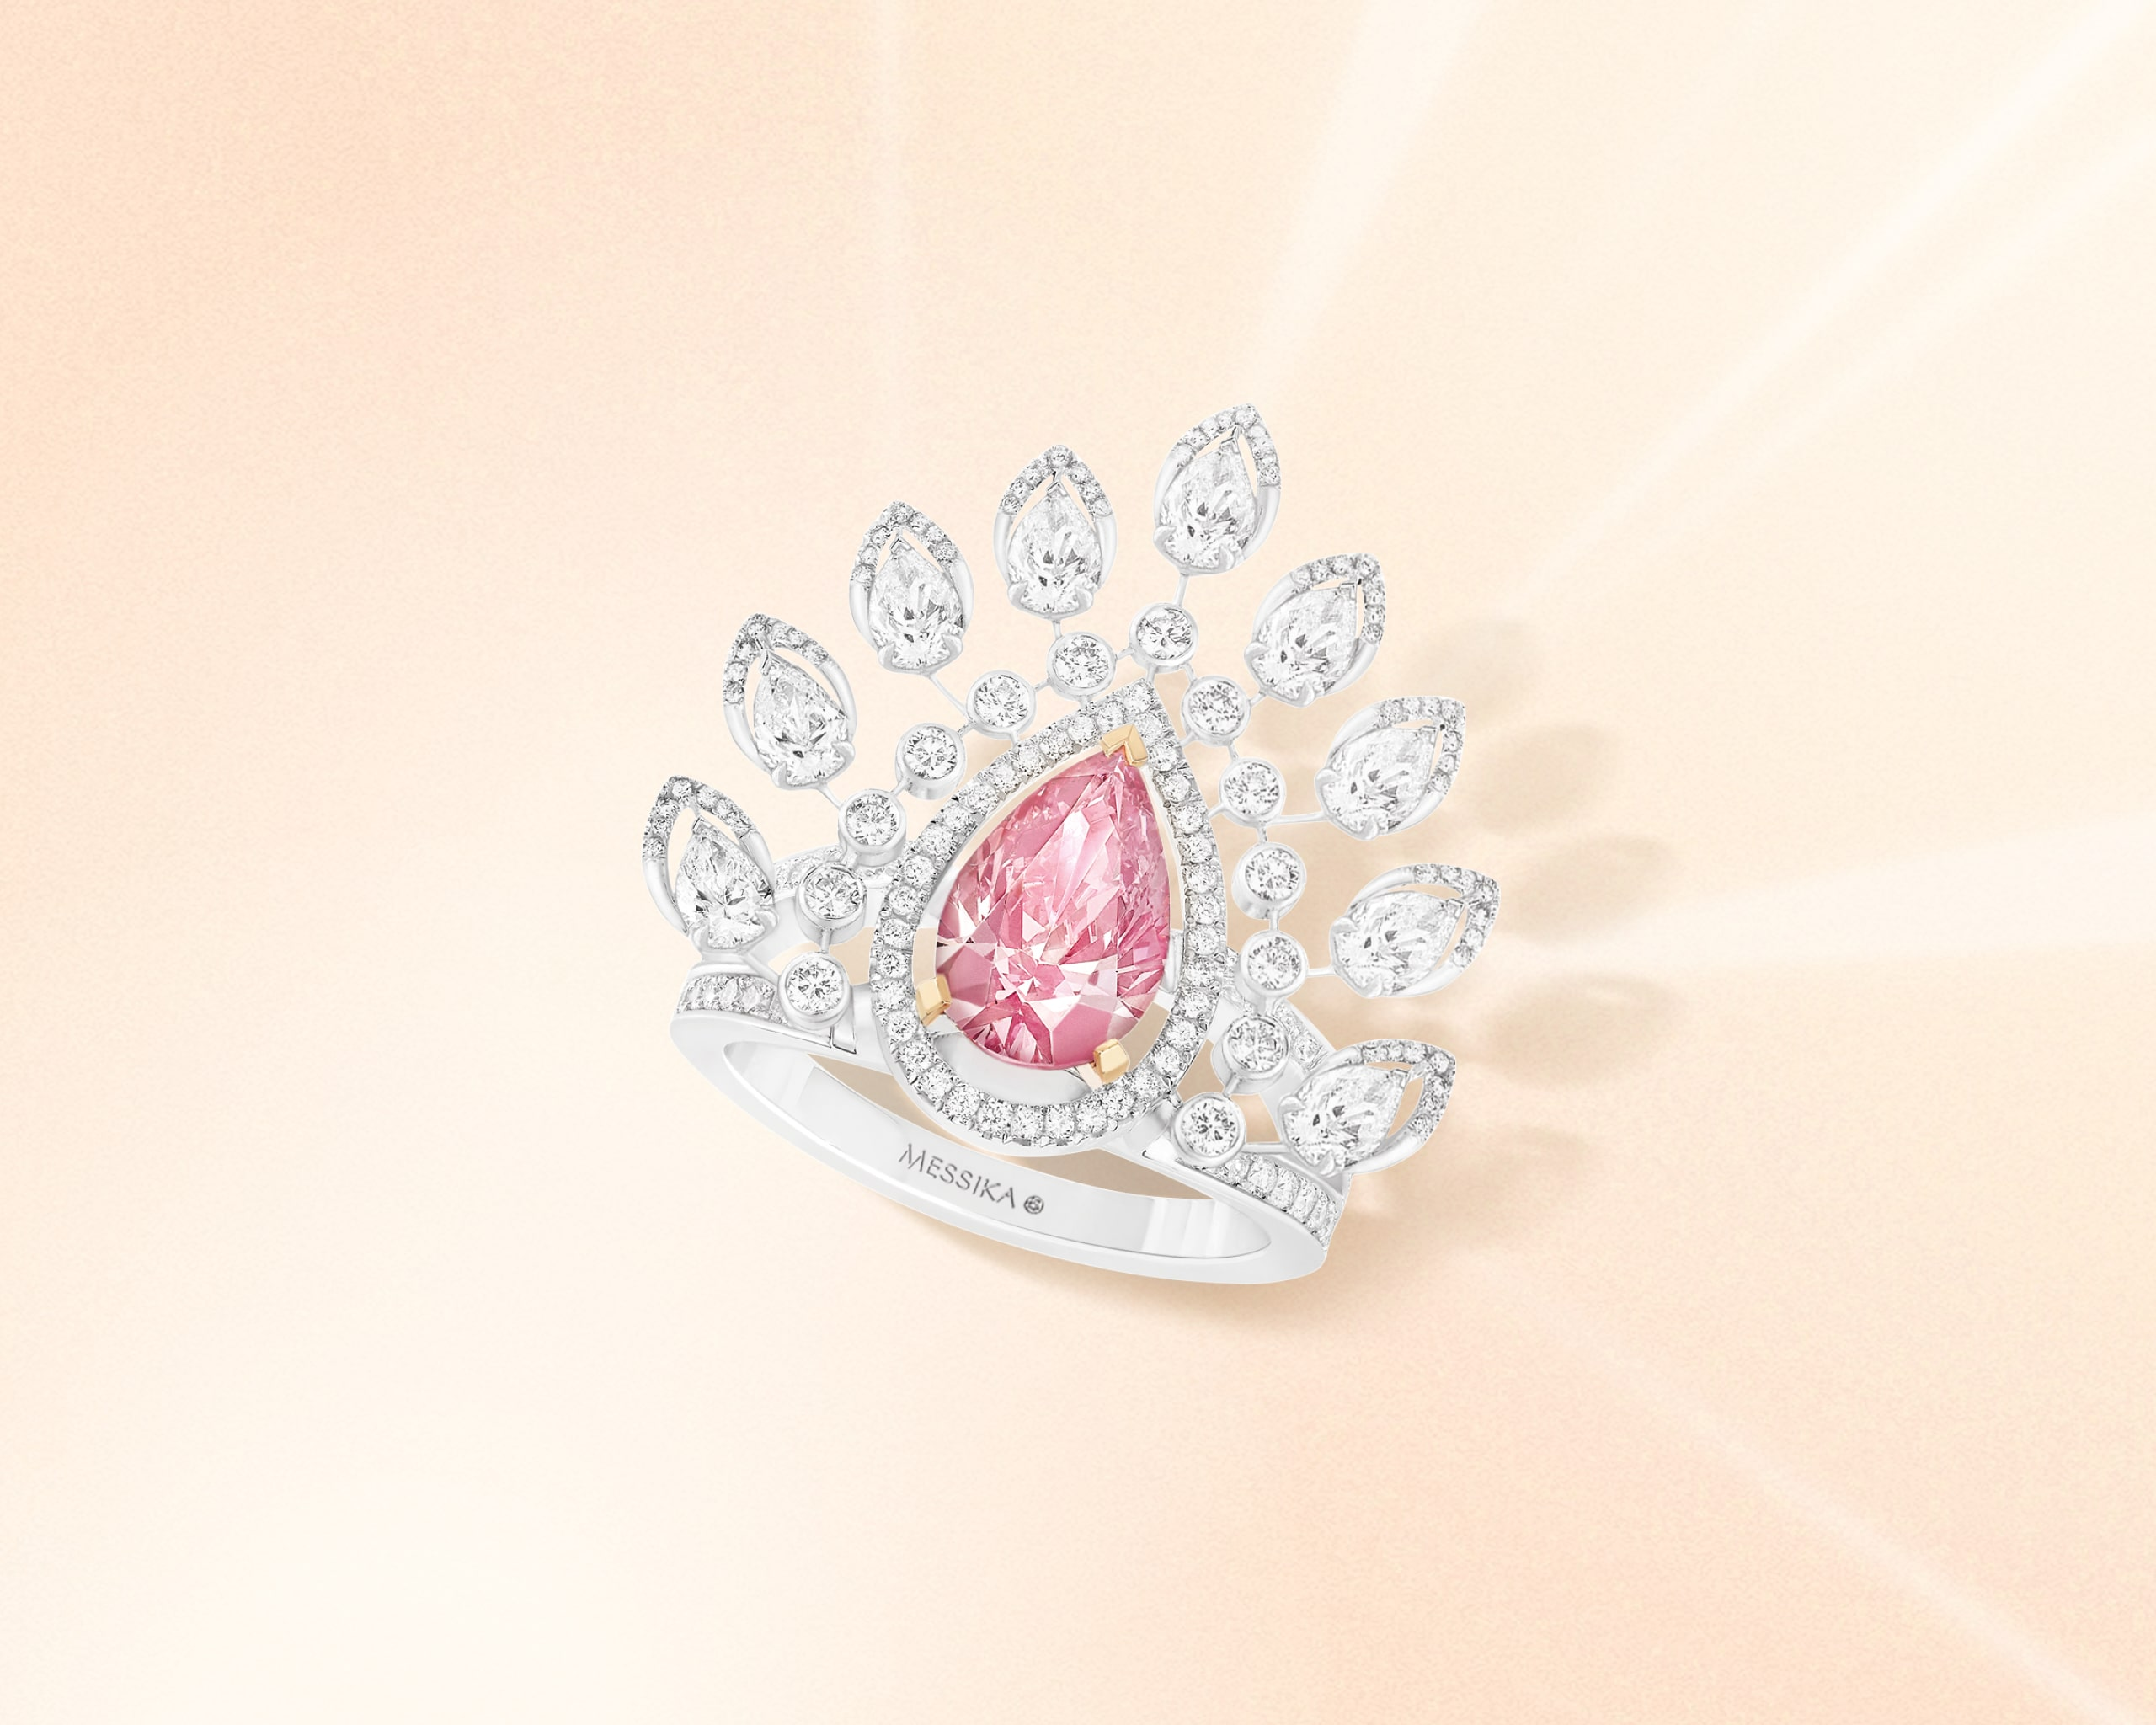 Crown shaped marquise diamond ring with pink diamond centerpiece from Desert Bloom collection by Messika